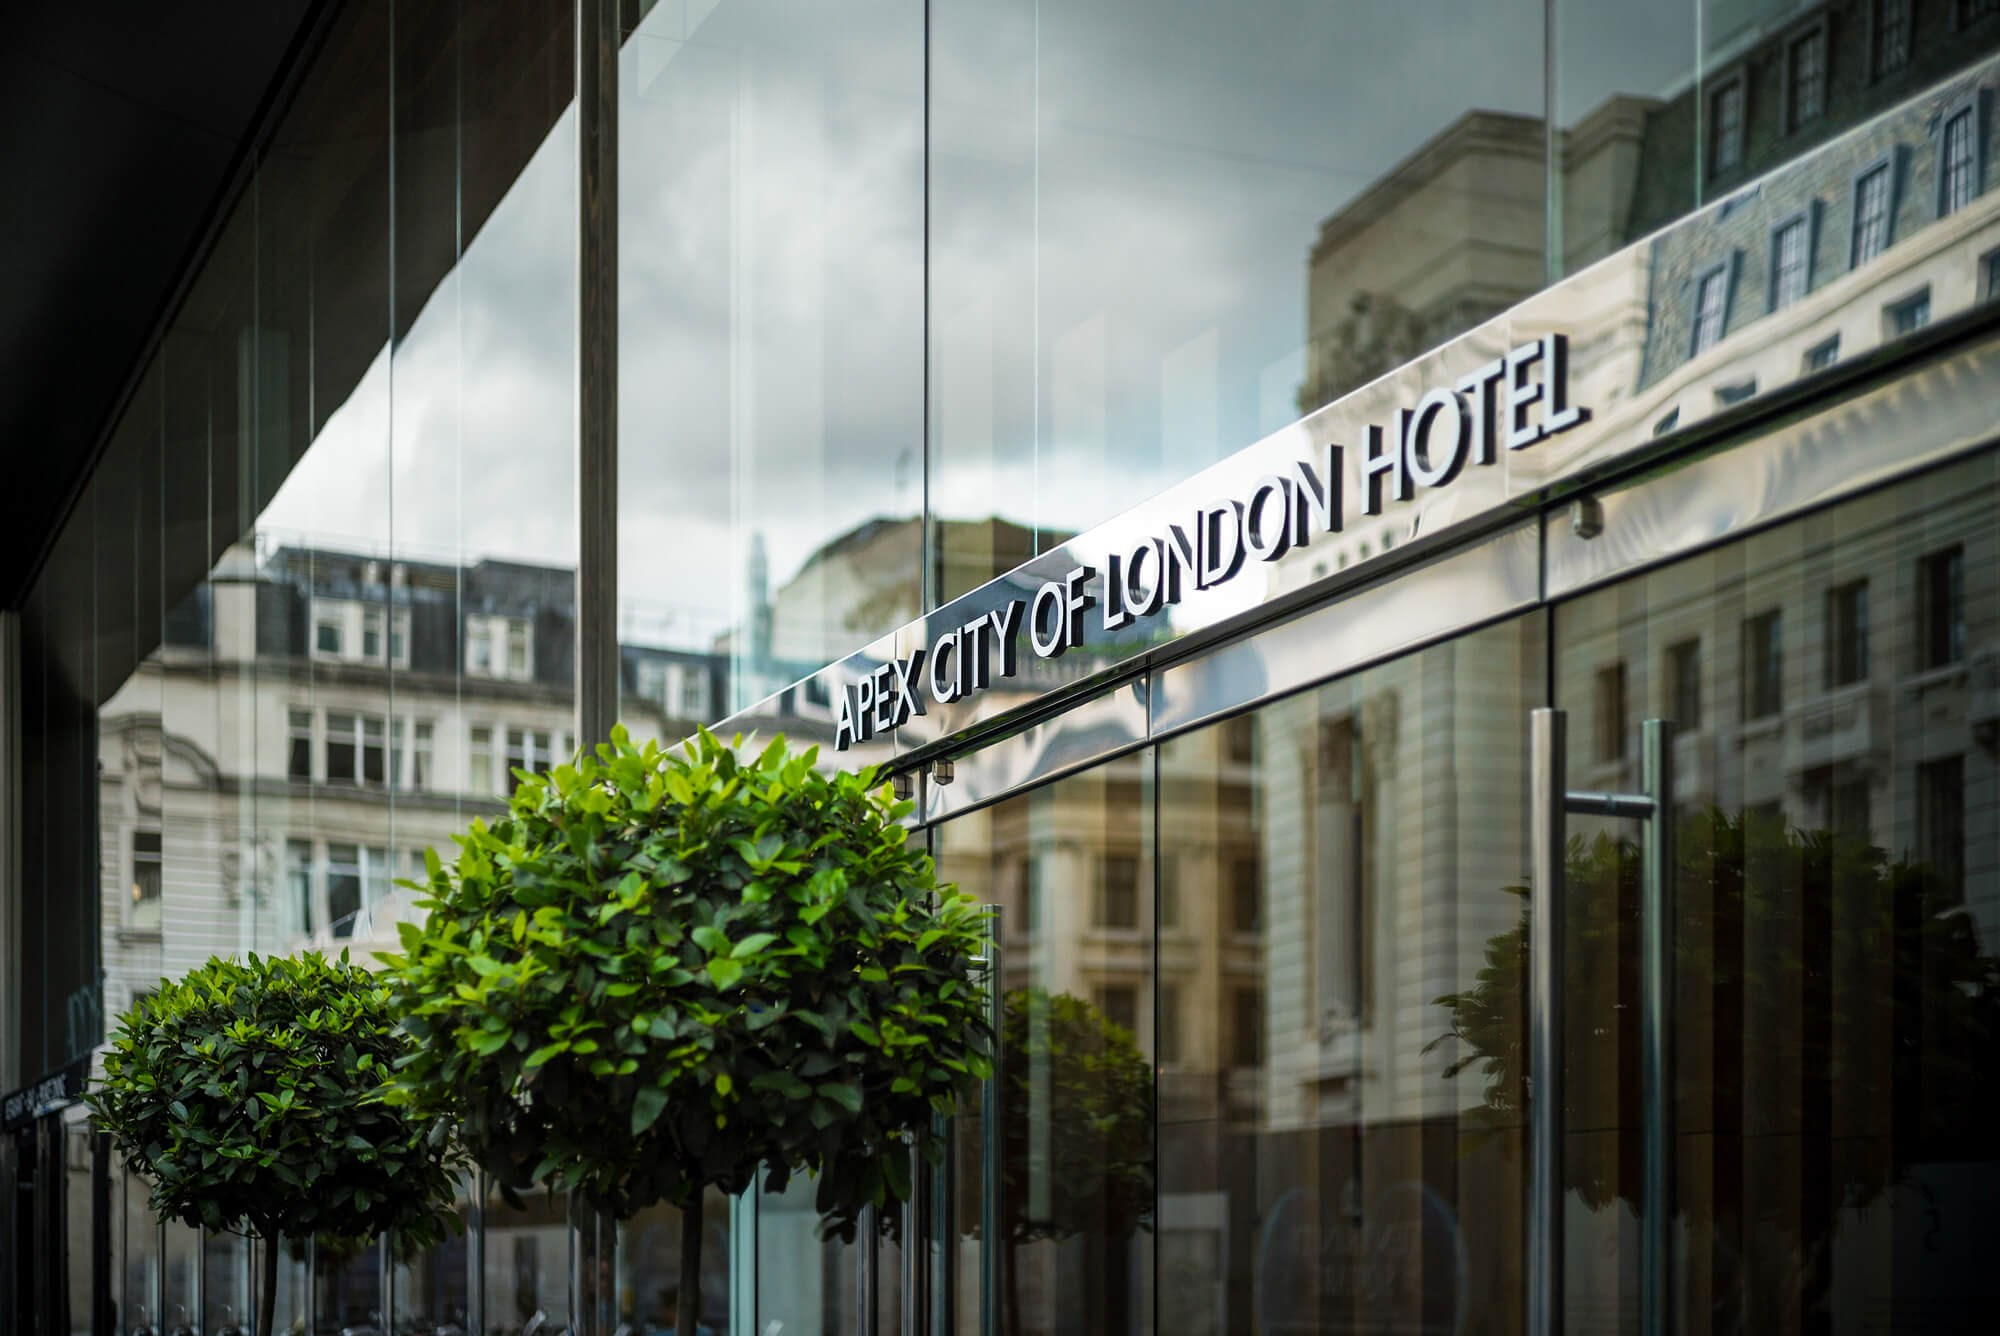 Apex City of London Hotel entrance